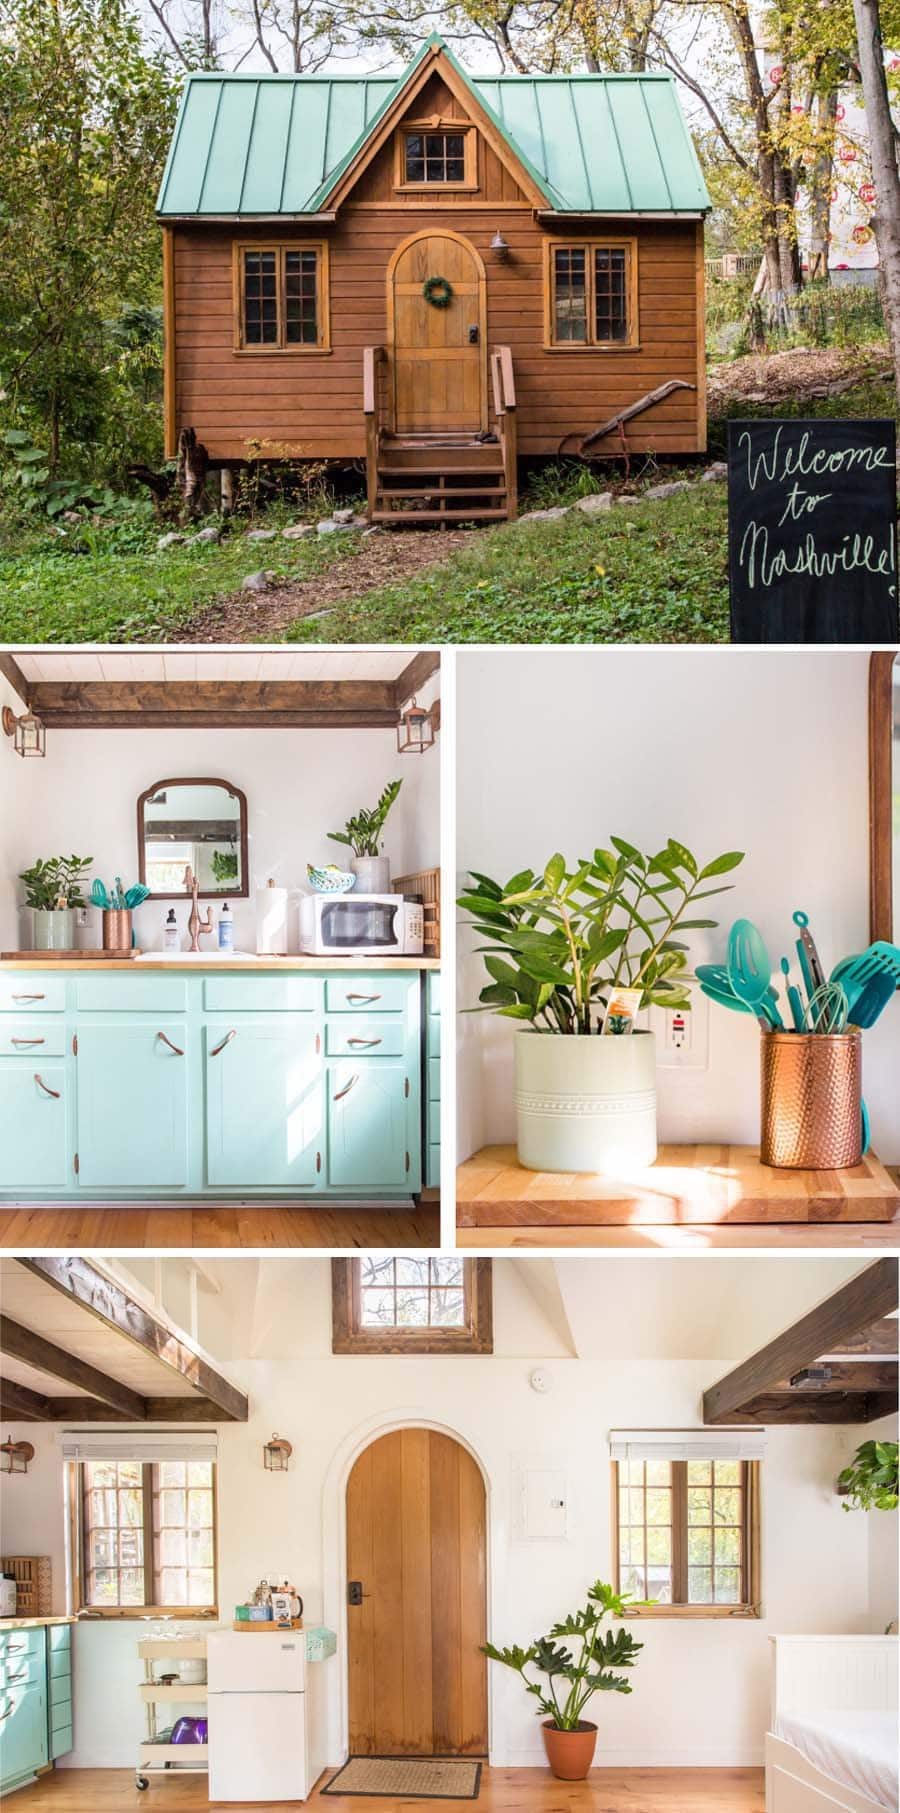 Cute and colorful tiny home Airbnb in Nashville, Tennessee